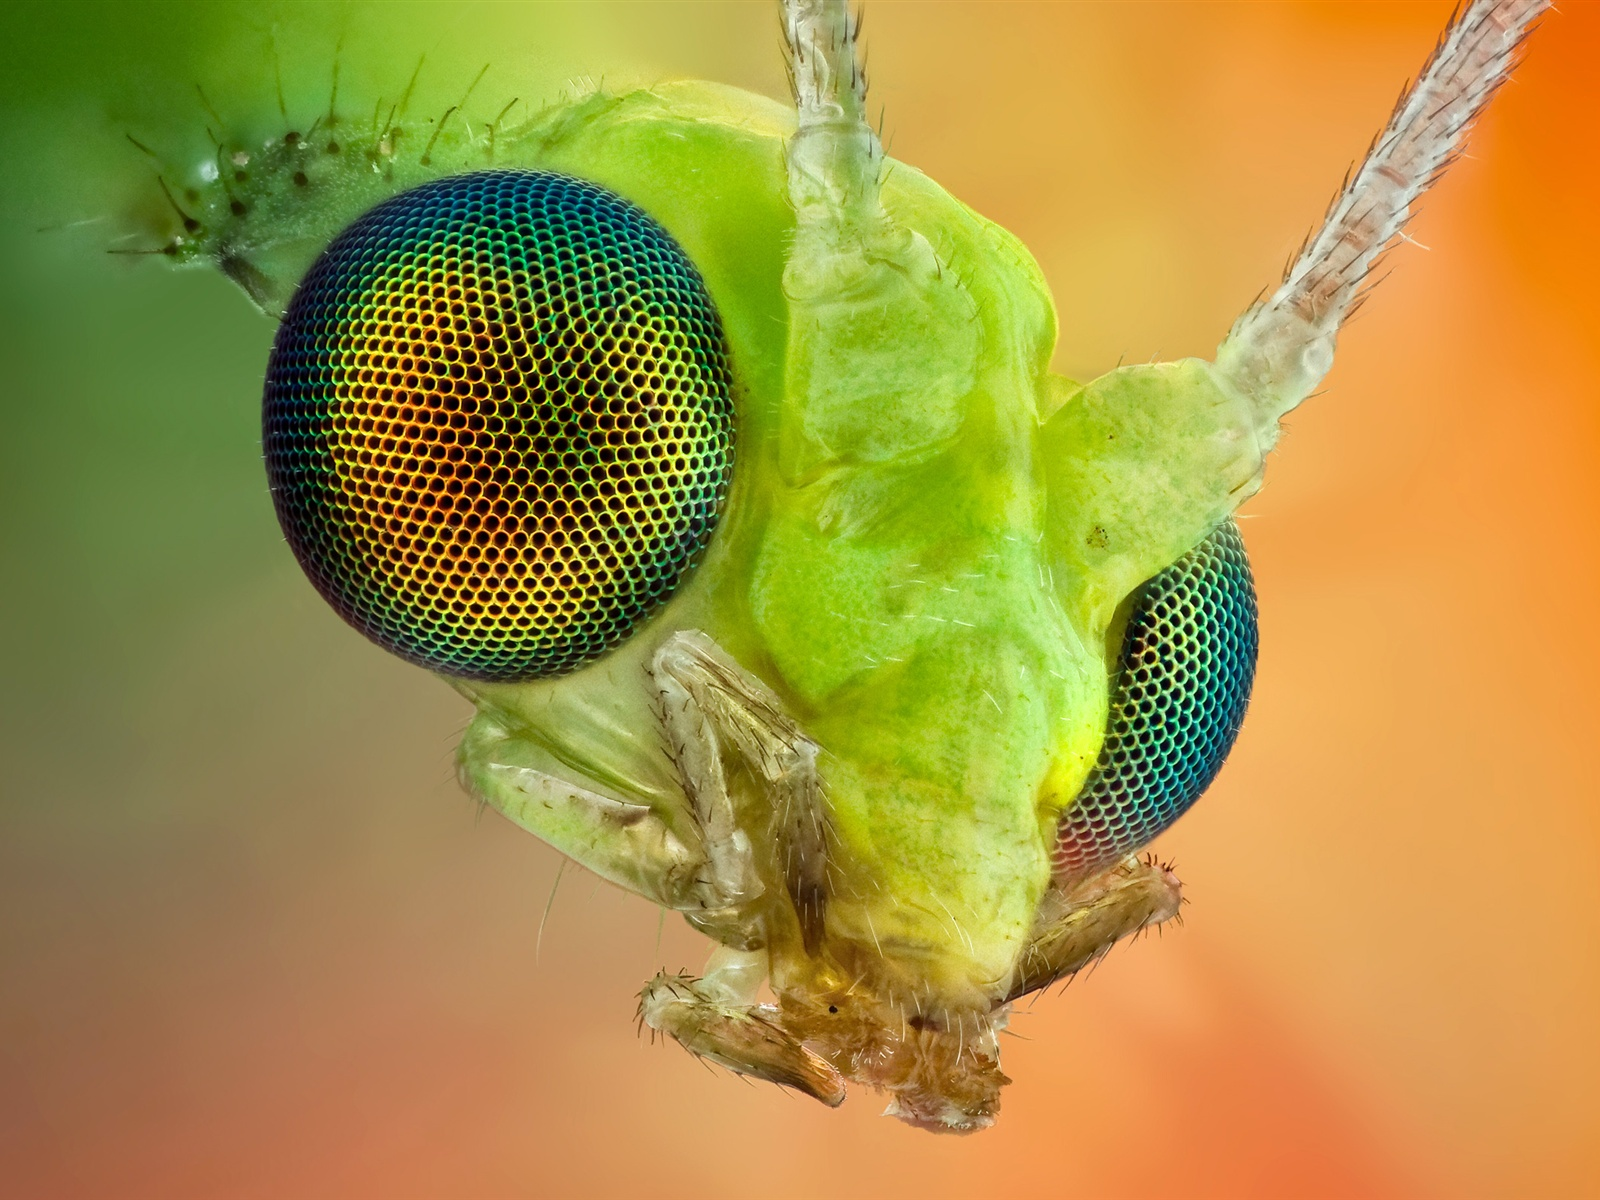 Wallpaper The Insect Compound Eye Macro 2560x1600 Hd